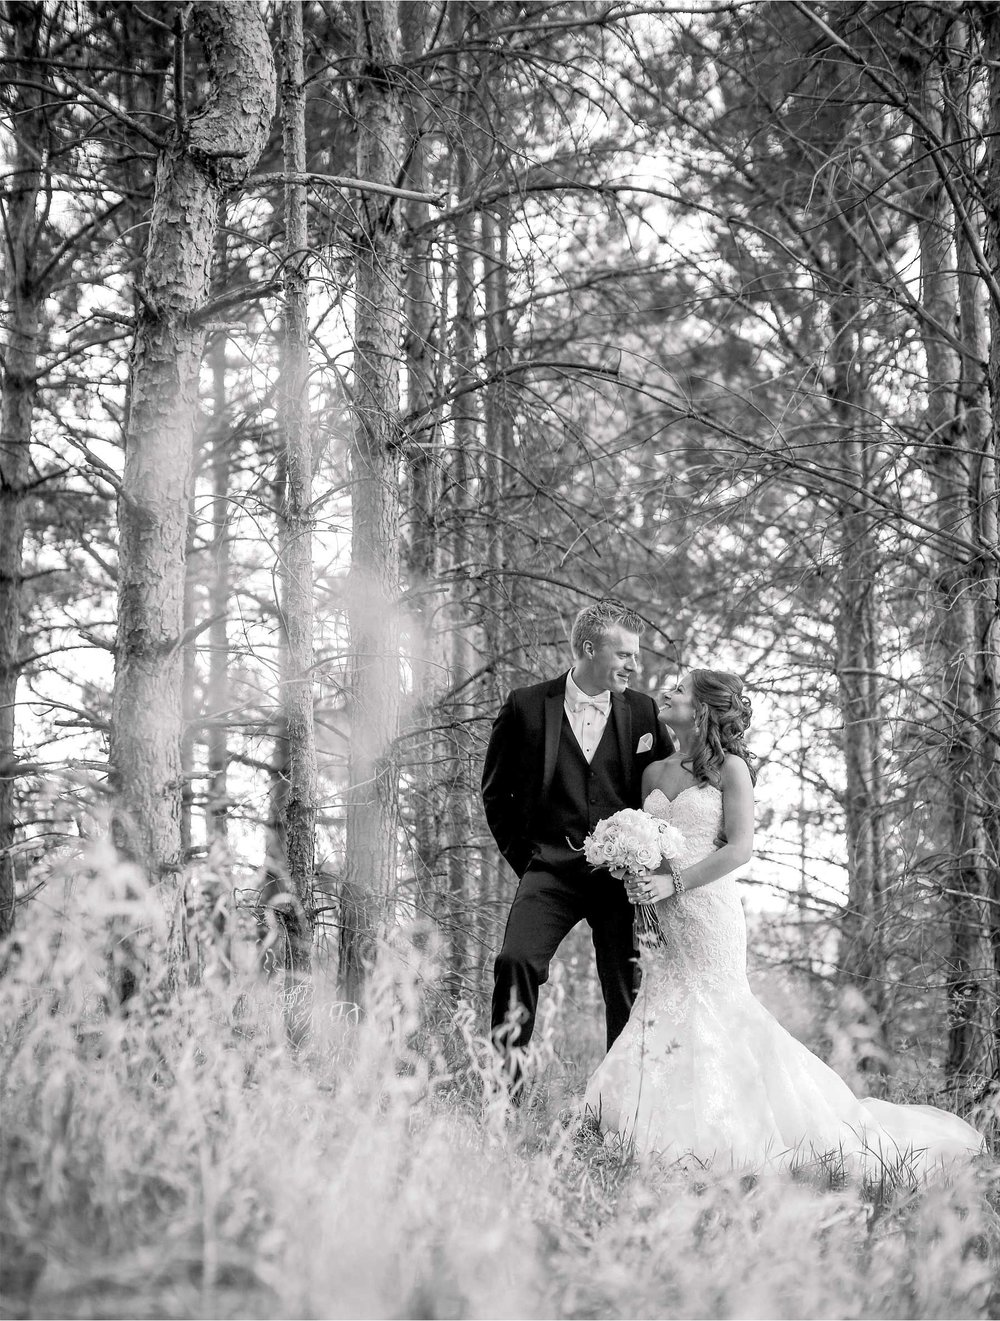 03-Minneapolis-Minnesota-Wedding-Photography-by-Vick-Photography-First-Look-Tianna-&-Matt.jpg